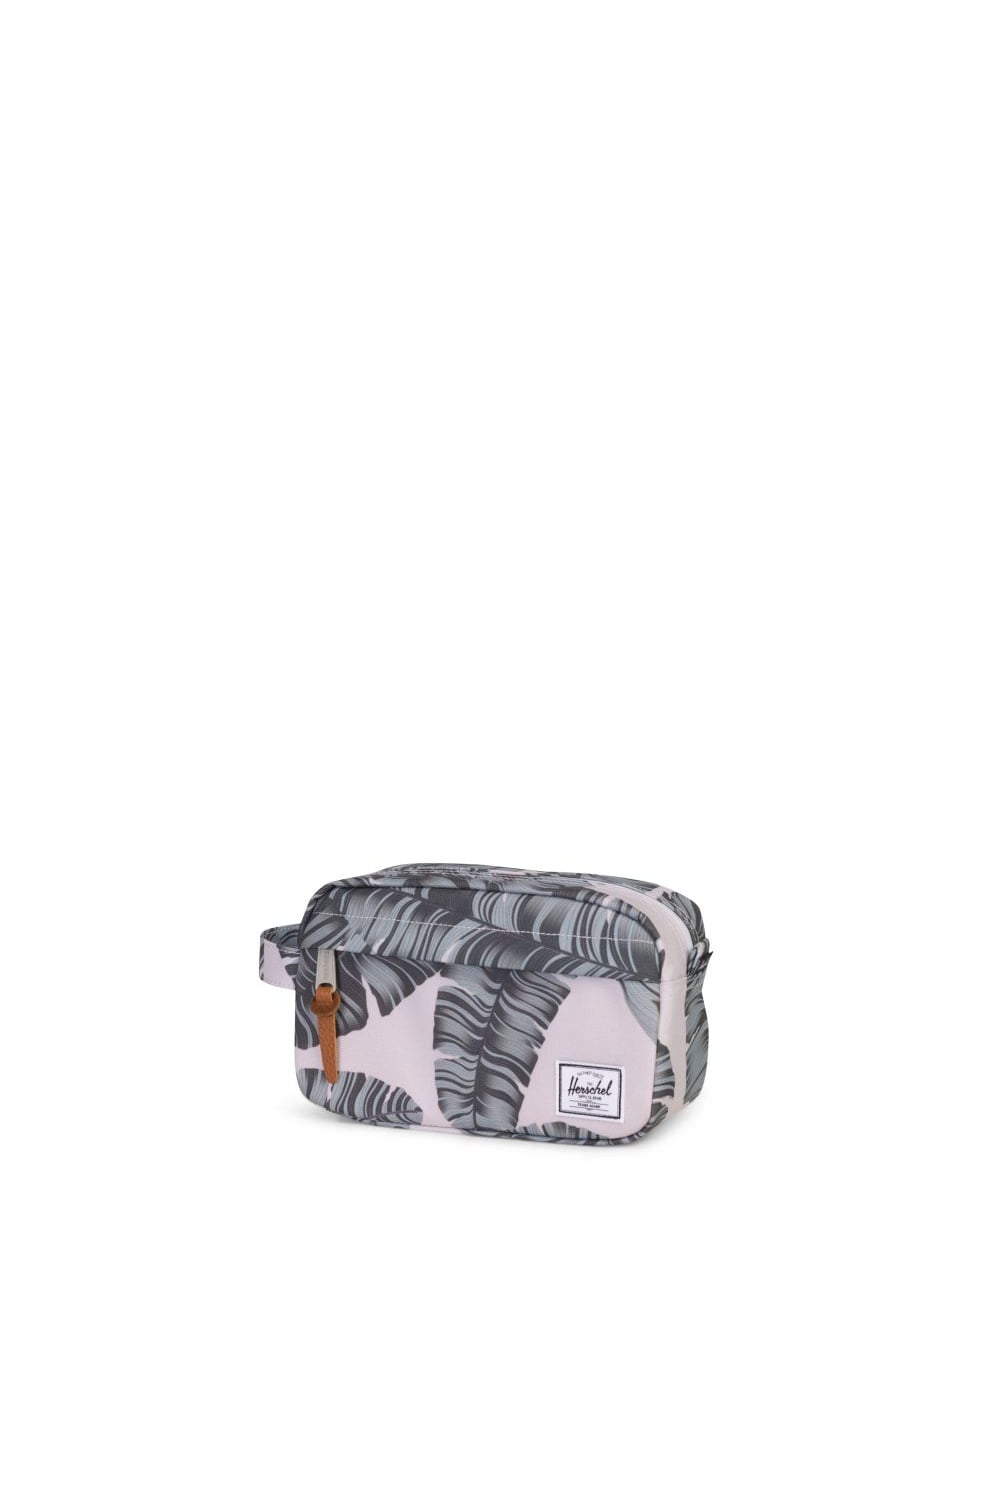 972cd0b9ab4 Herschel Supply Co. Chapter Carry-On Washbag (Silver Birch Palm ...